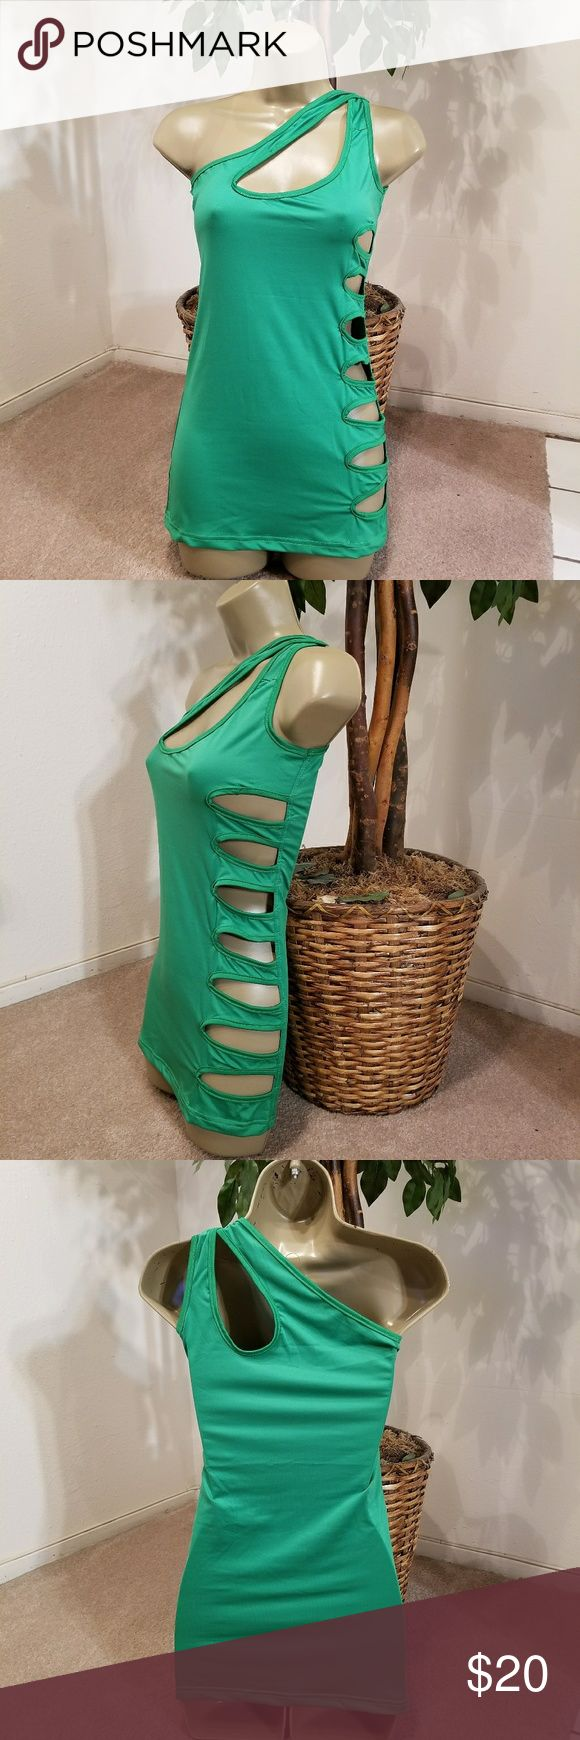 🆕️Sexy Green Mini Dress Brand new, Never Worn, Never tried on  Size M (No size tag) Green   Bundle 5 items listed as 5 for $25 and I will send you the $25 deal 😉  THIS ITEM IS NOT PART OF THE 5/$25 DEAL Dresses Mini